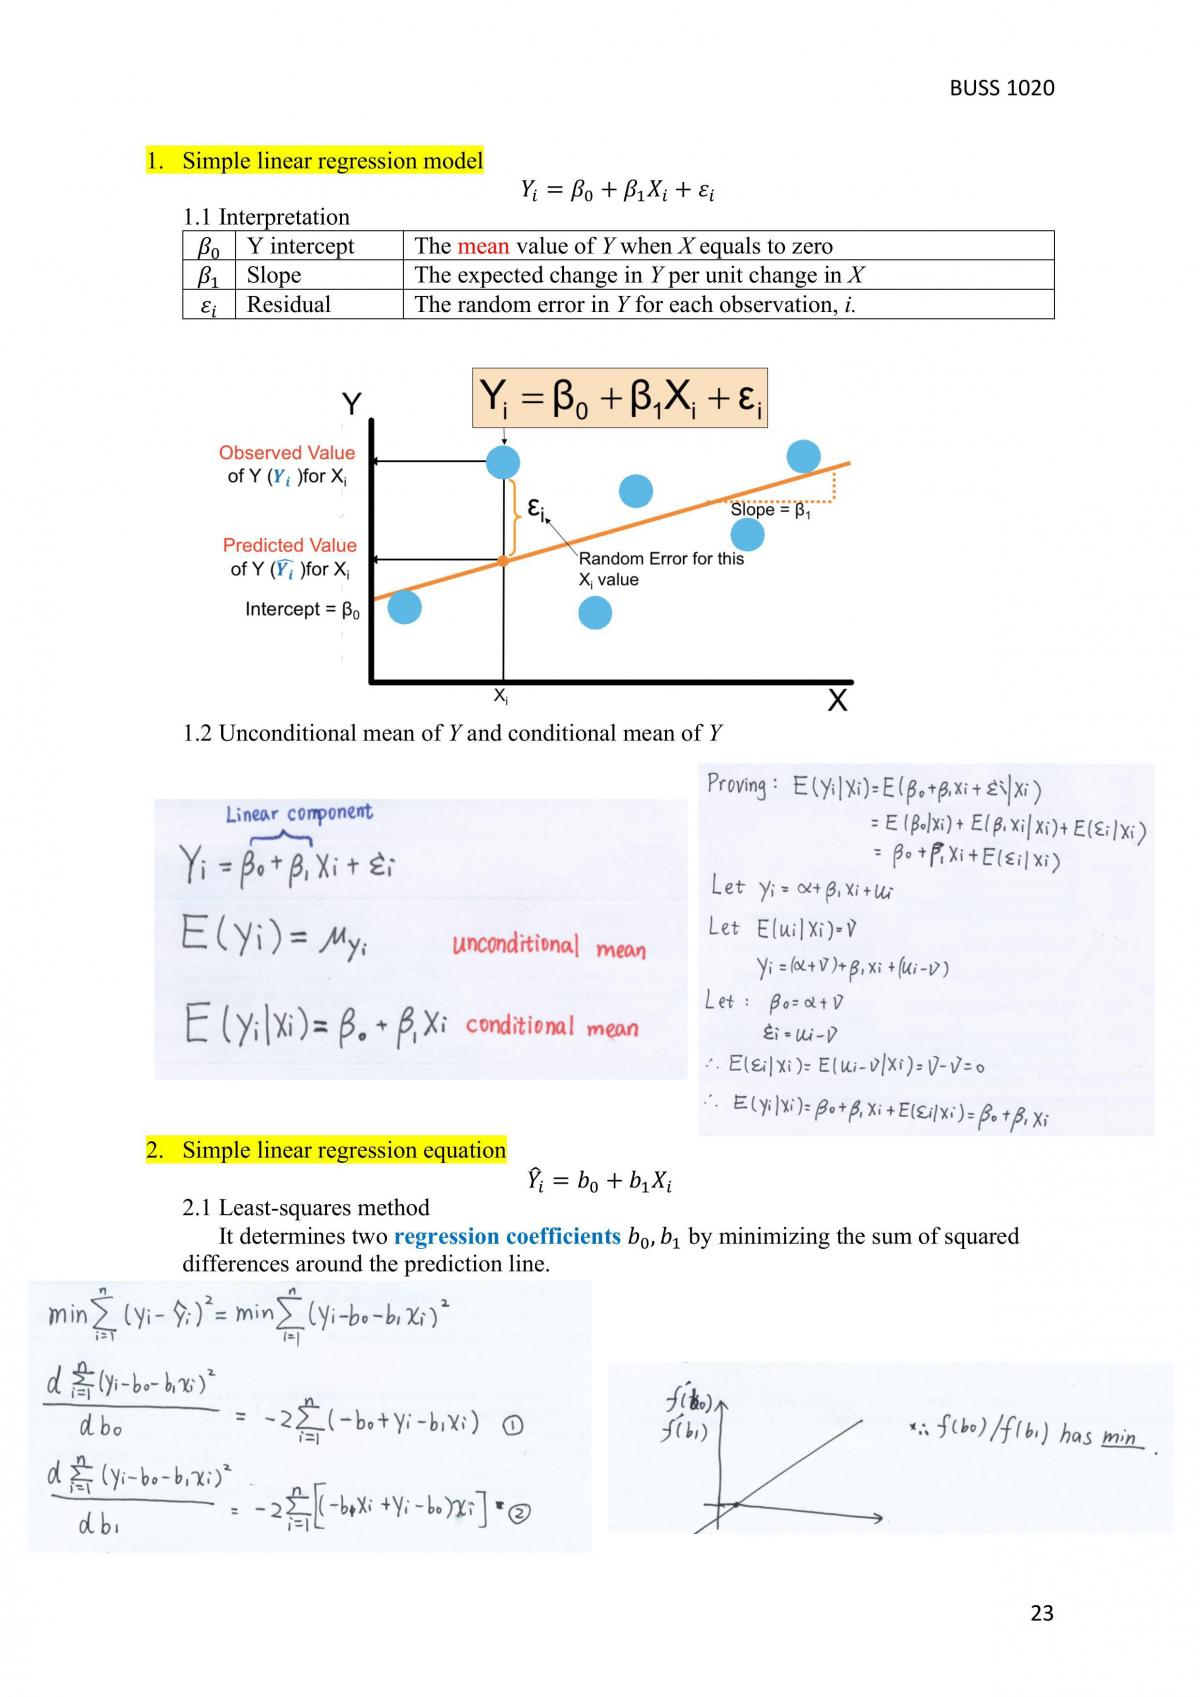 Complete Revision Notes - BUSS1020 - Page 23